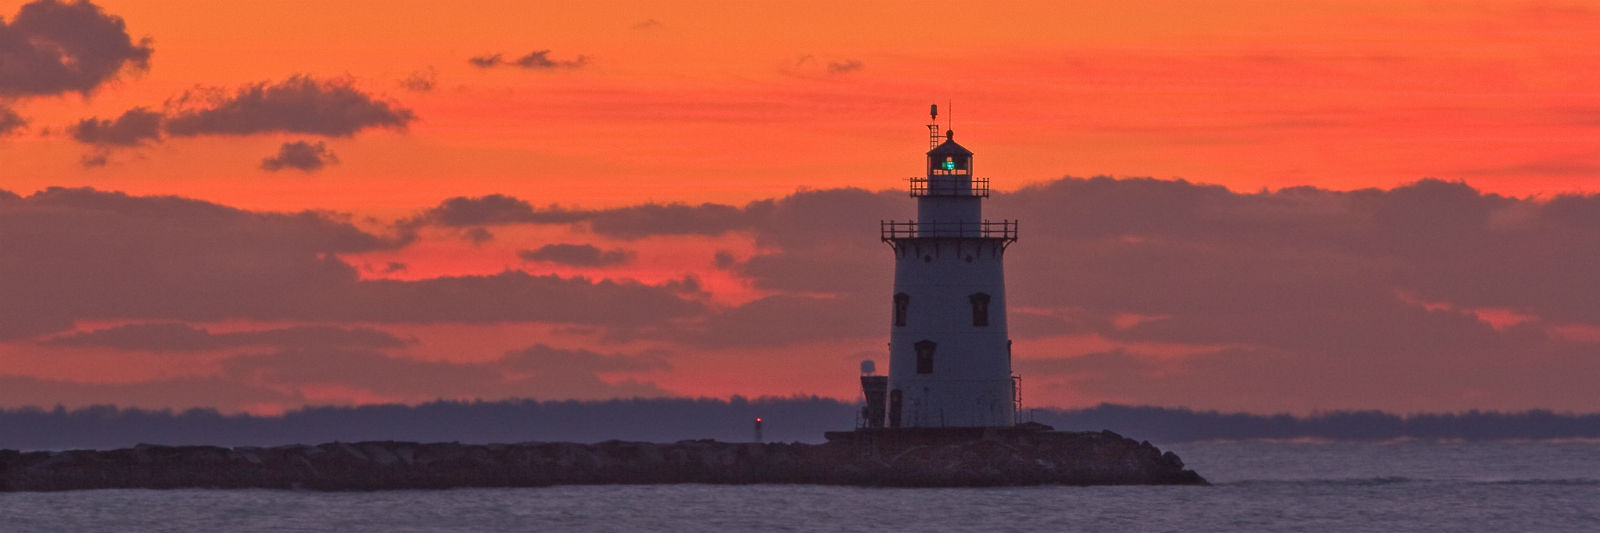 SunsetLighthouse.jpg